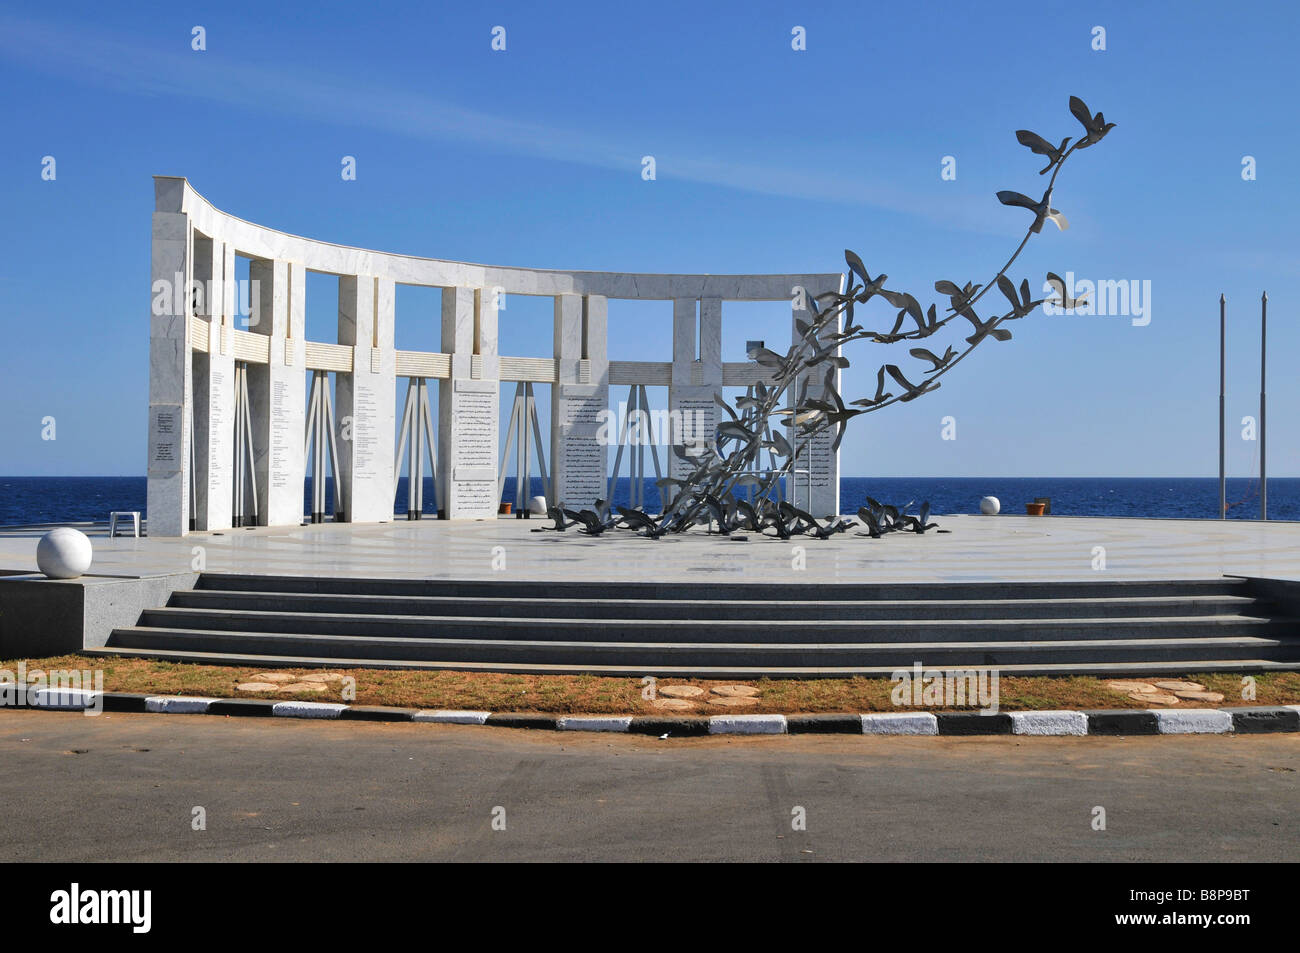 Air crash victims memorial in Sharm el Sheikh, Egypt - Stock Image